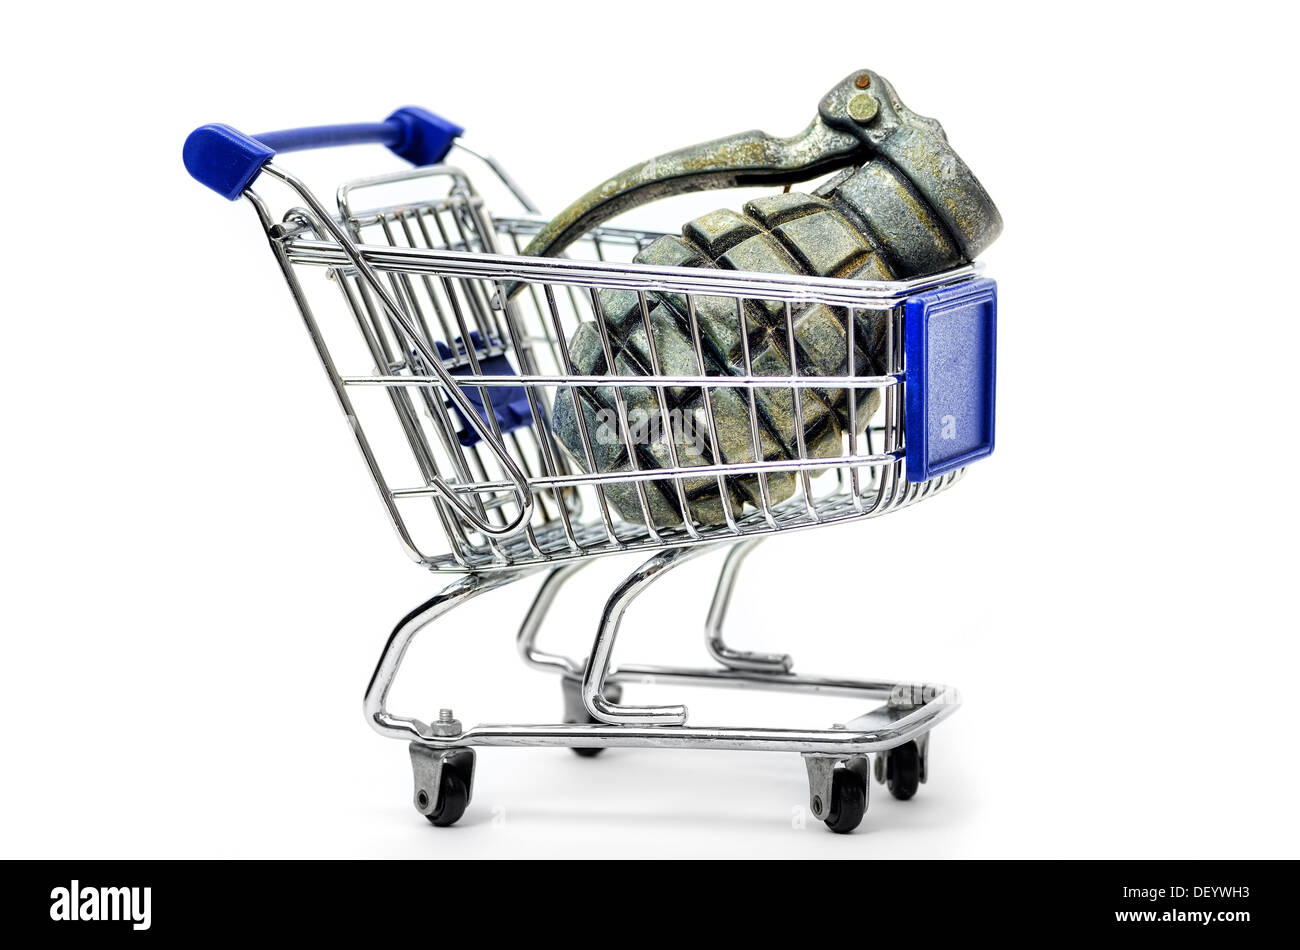 Shopping carts with grenade, symbolic photo armament, Einkaufswagen mit Handgranate, Symbolfoto Rüstung Stock Photo